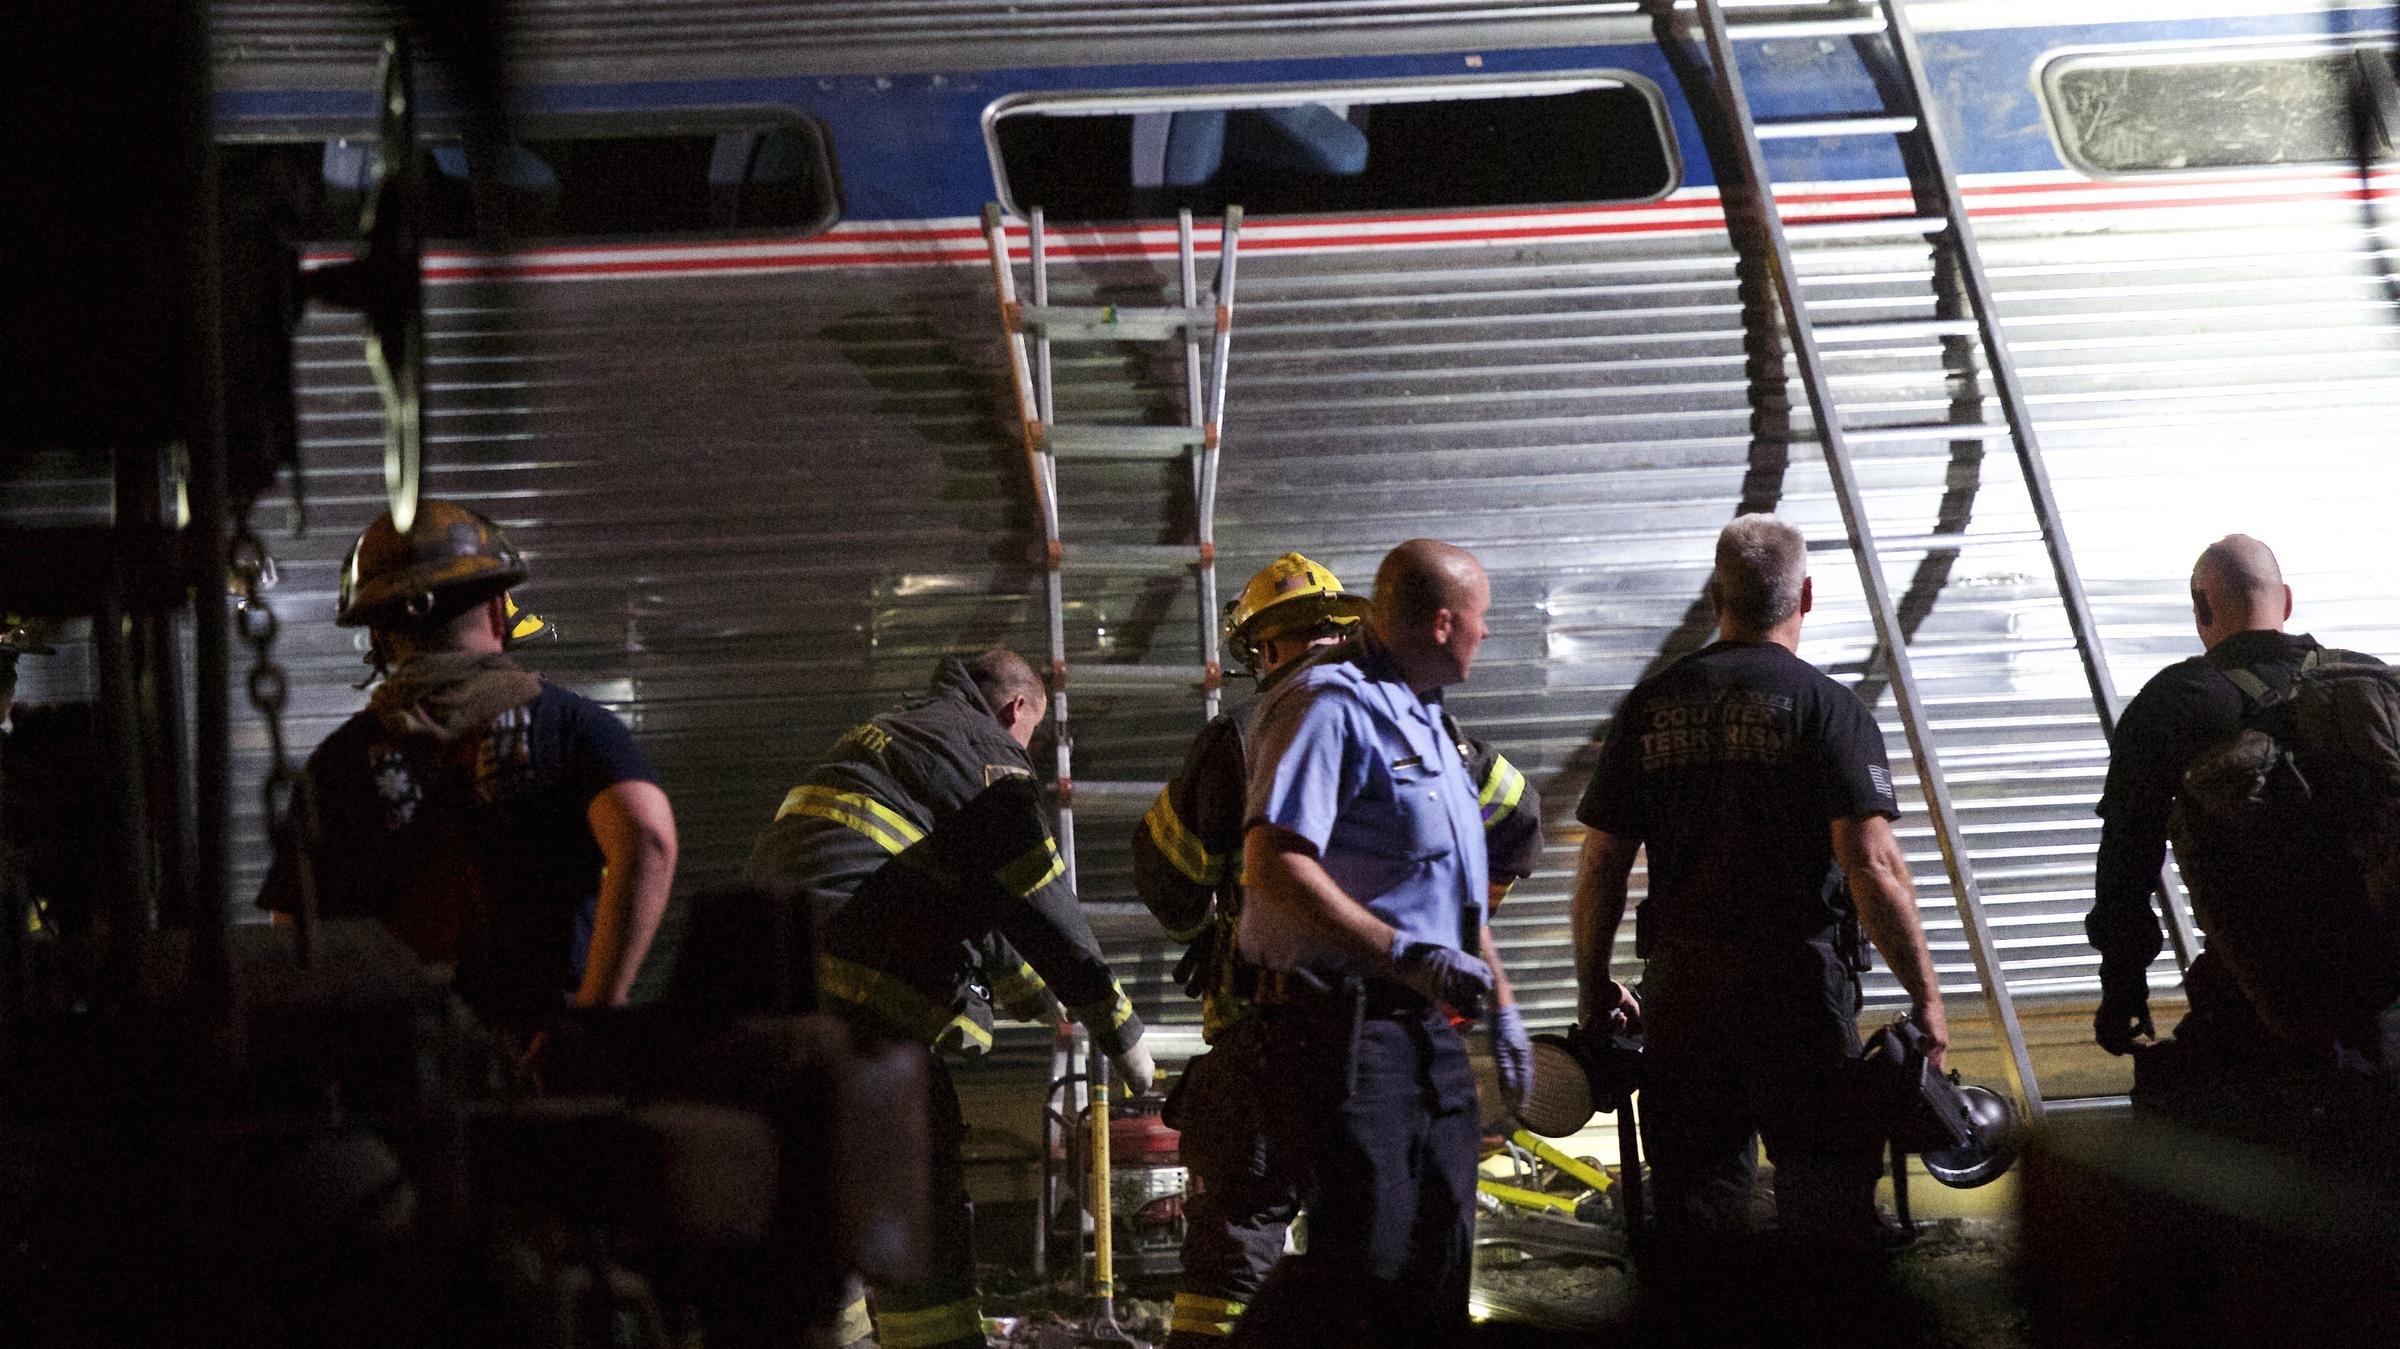 amtrak post disaster analysis Wikimedia commons has media related to 2015 philadelphia train derailment amtrak derailment in philadelphia, pa – ntsb amtrak derailment , house transportation and infrastructure committee hearing, june 2, 2015, as recorded by c-span.